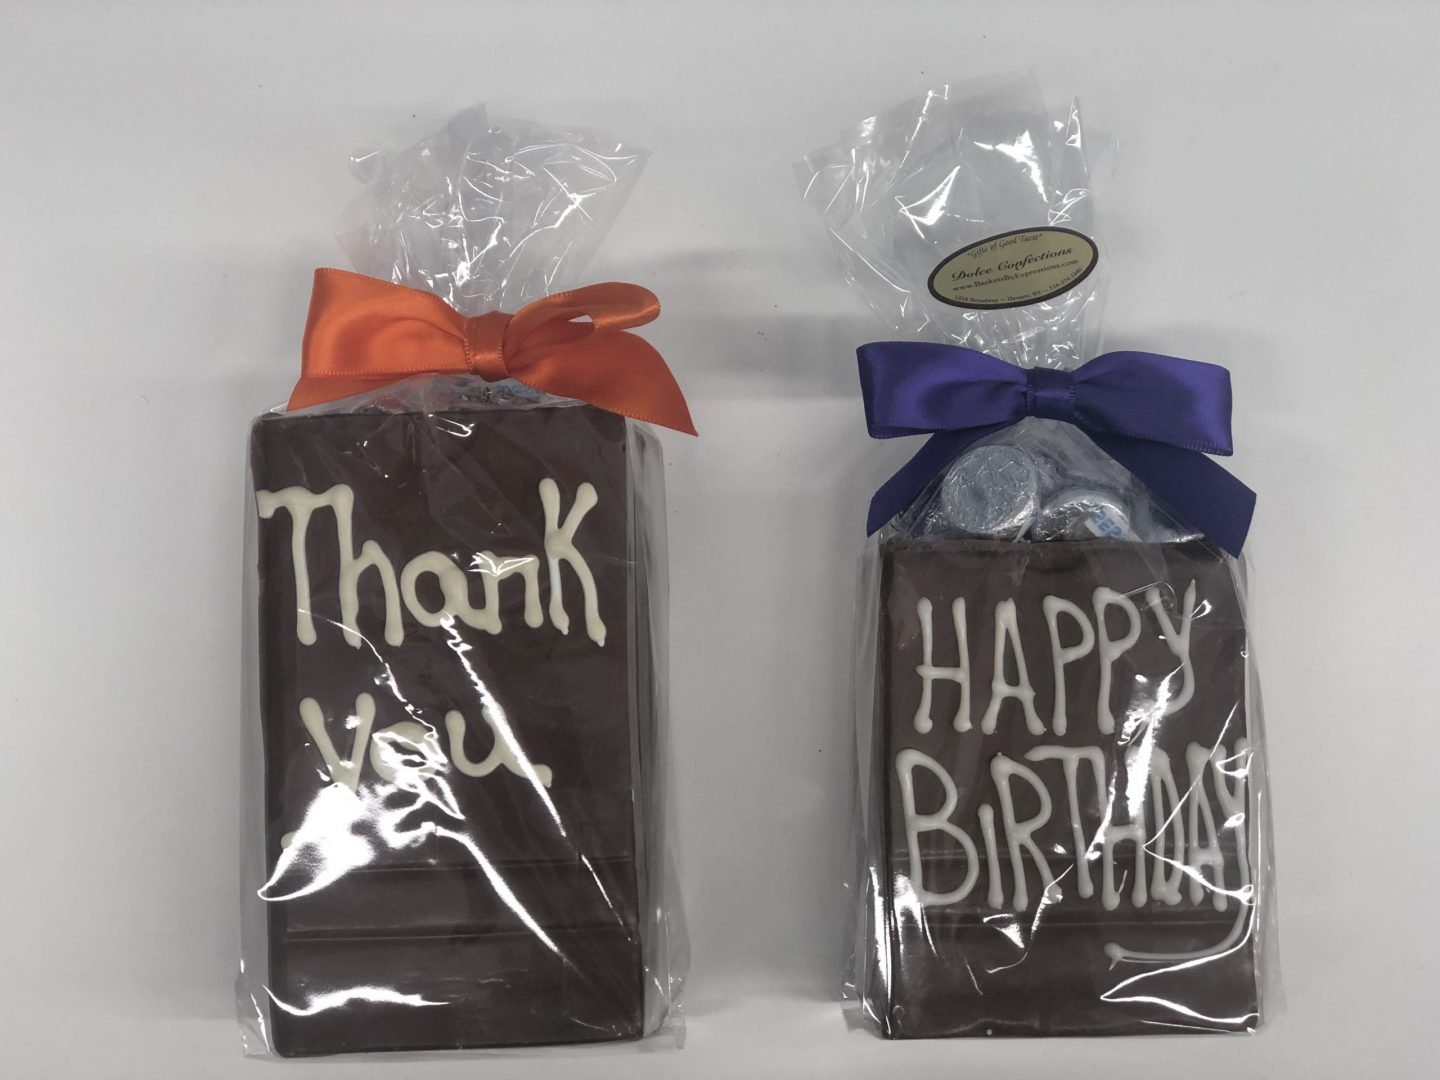 Small & Large chocolate bags filled with candies.